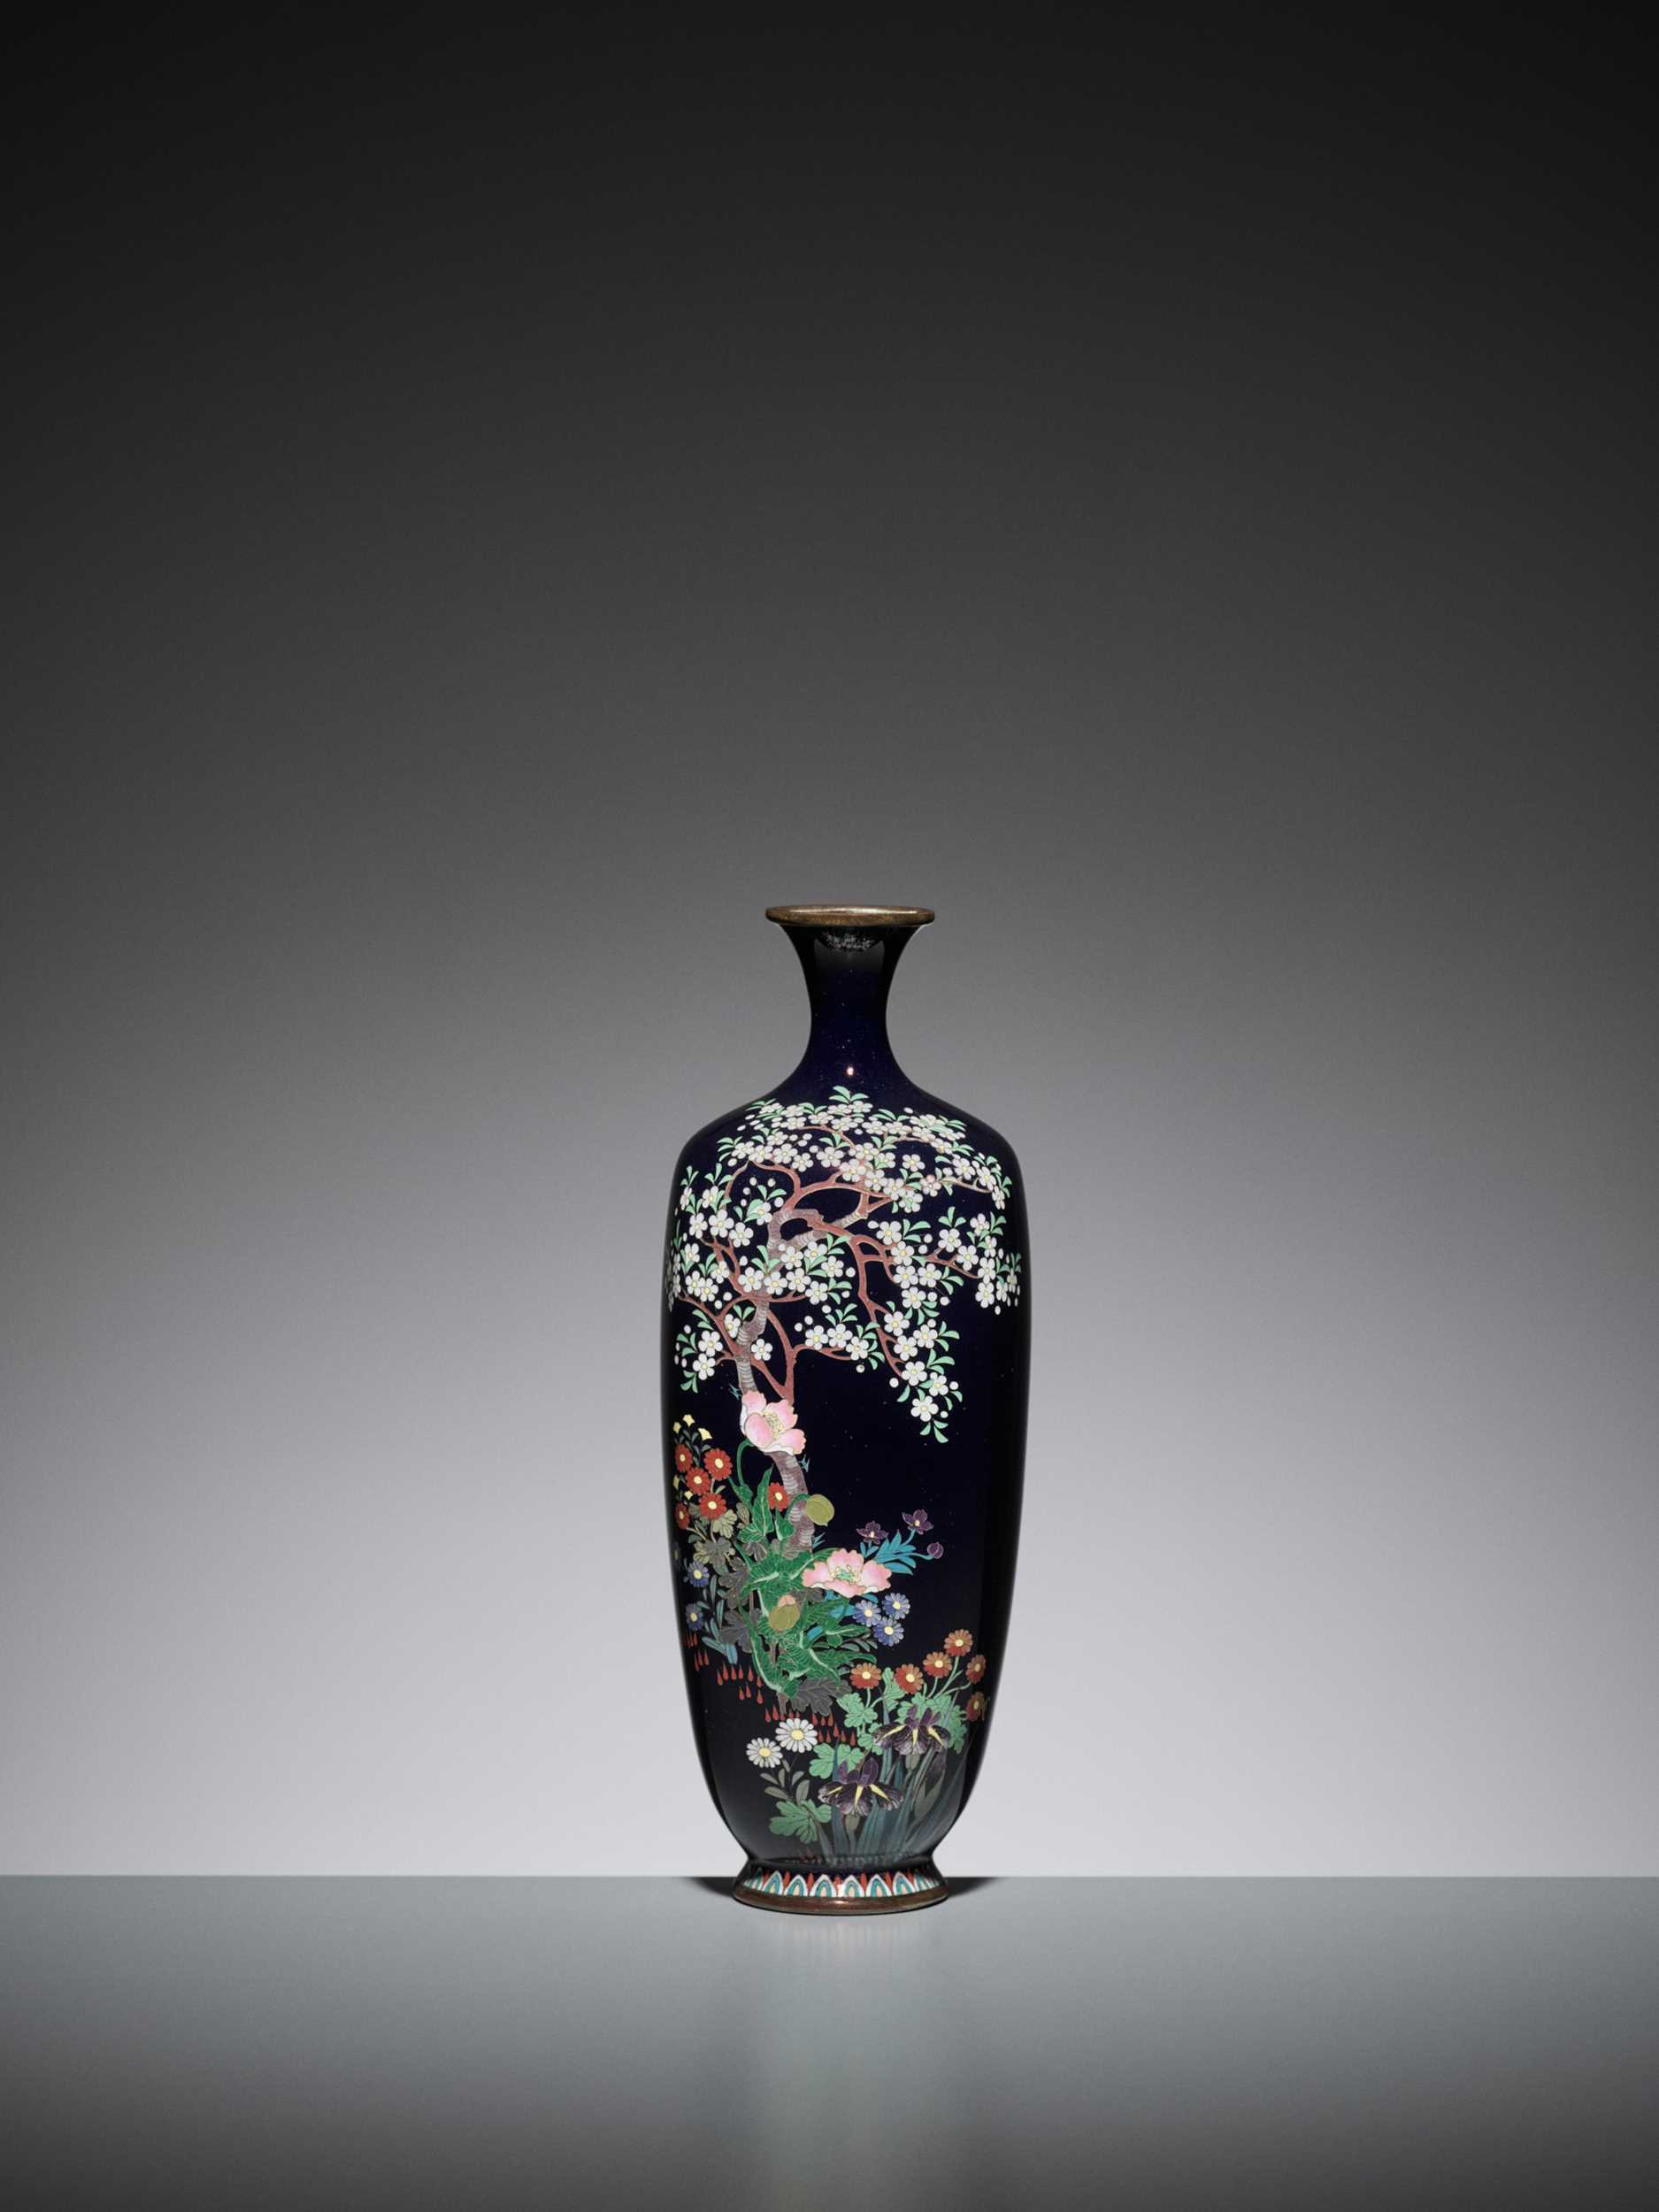 Lot 66 - A MIDNIGHT BLUE CLOISONNÉ ENAMEL VASE WITH CHERRY TREE AND FLOWERS